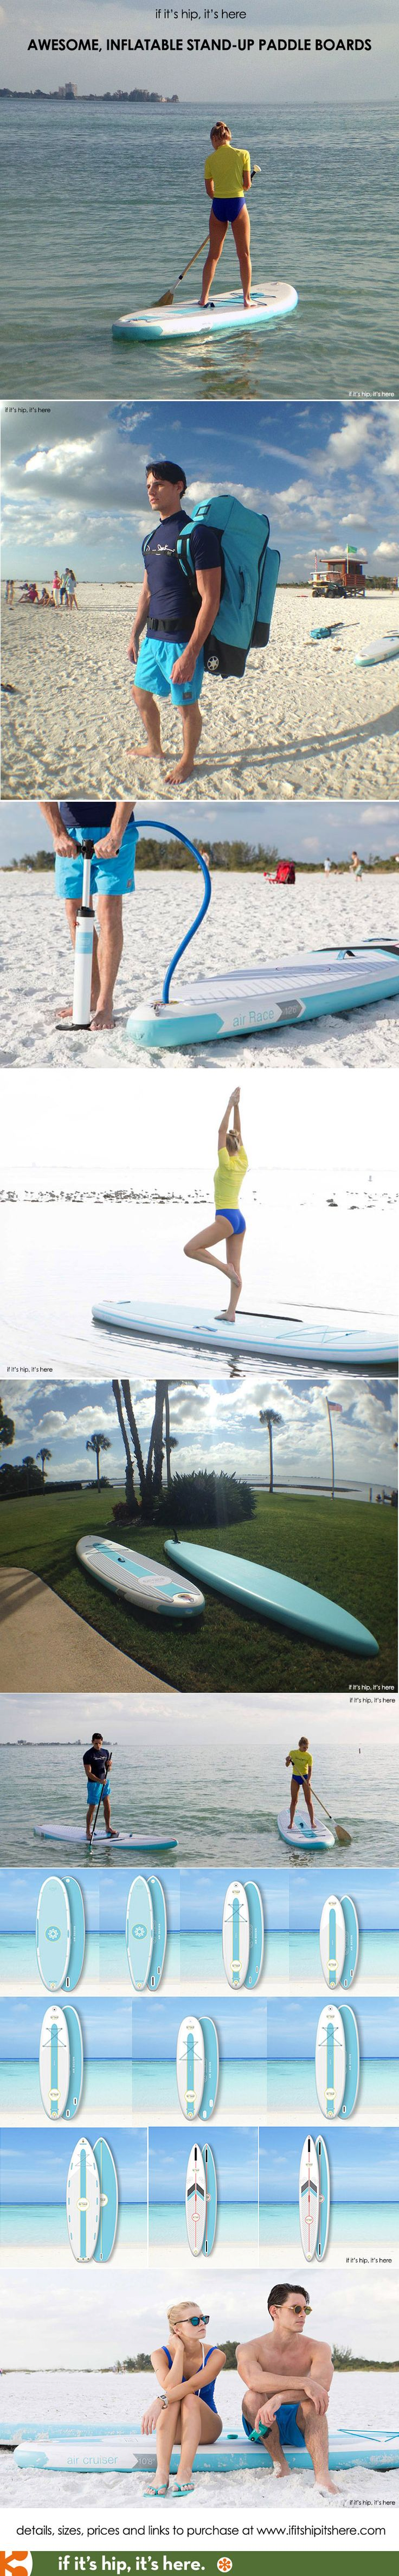 So awesome! Inflatable, portable stand-up paddle boards! and they come with a pump and travel bag. - if it's hip, it's here